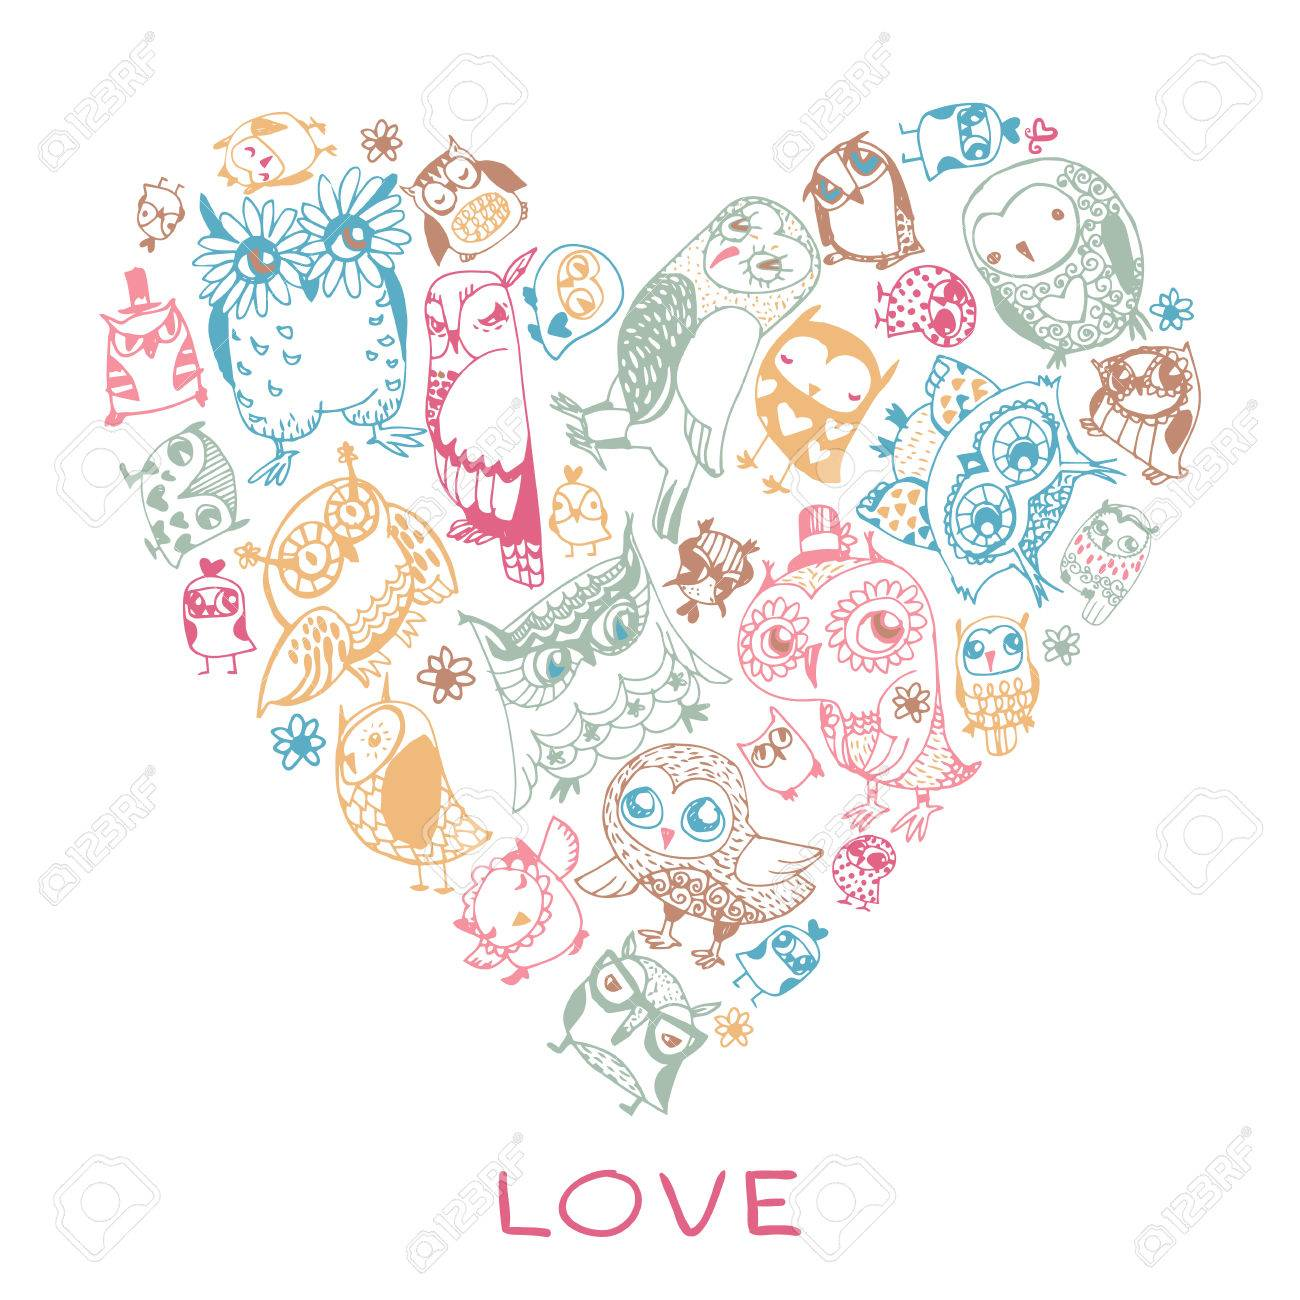 Heart Love Pattern With Owls Template For Design Romantic Greeting